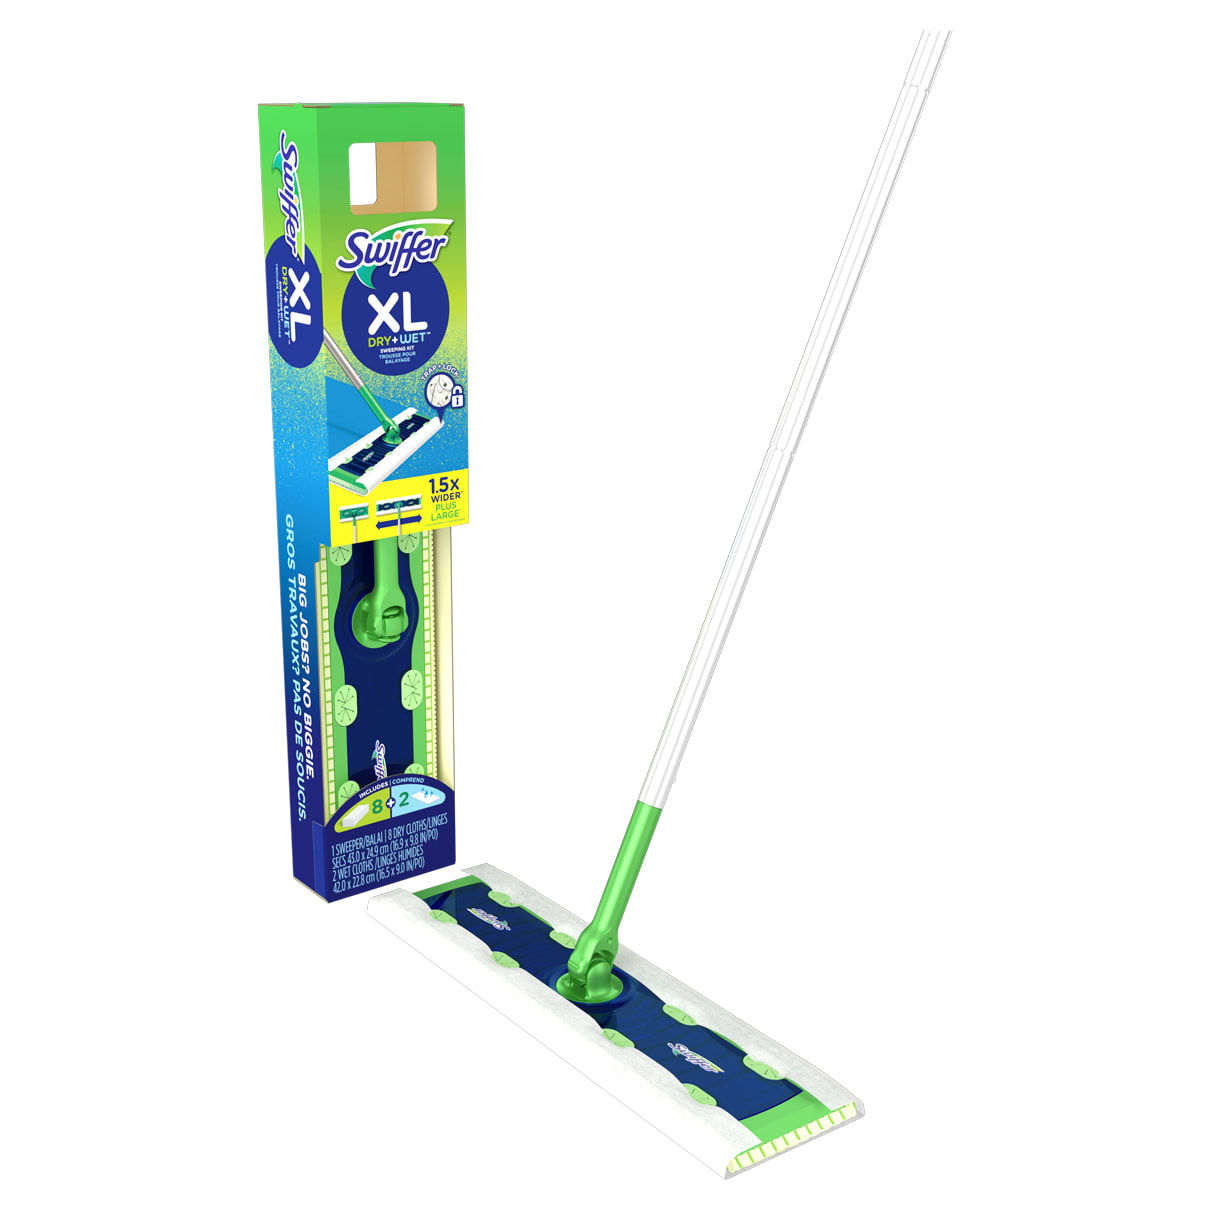 Swiffer Sweeper XL Dry+Wet